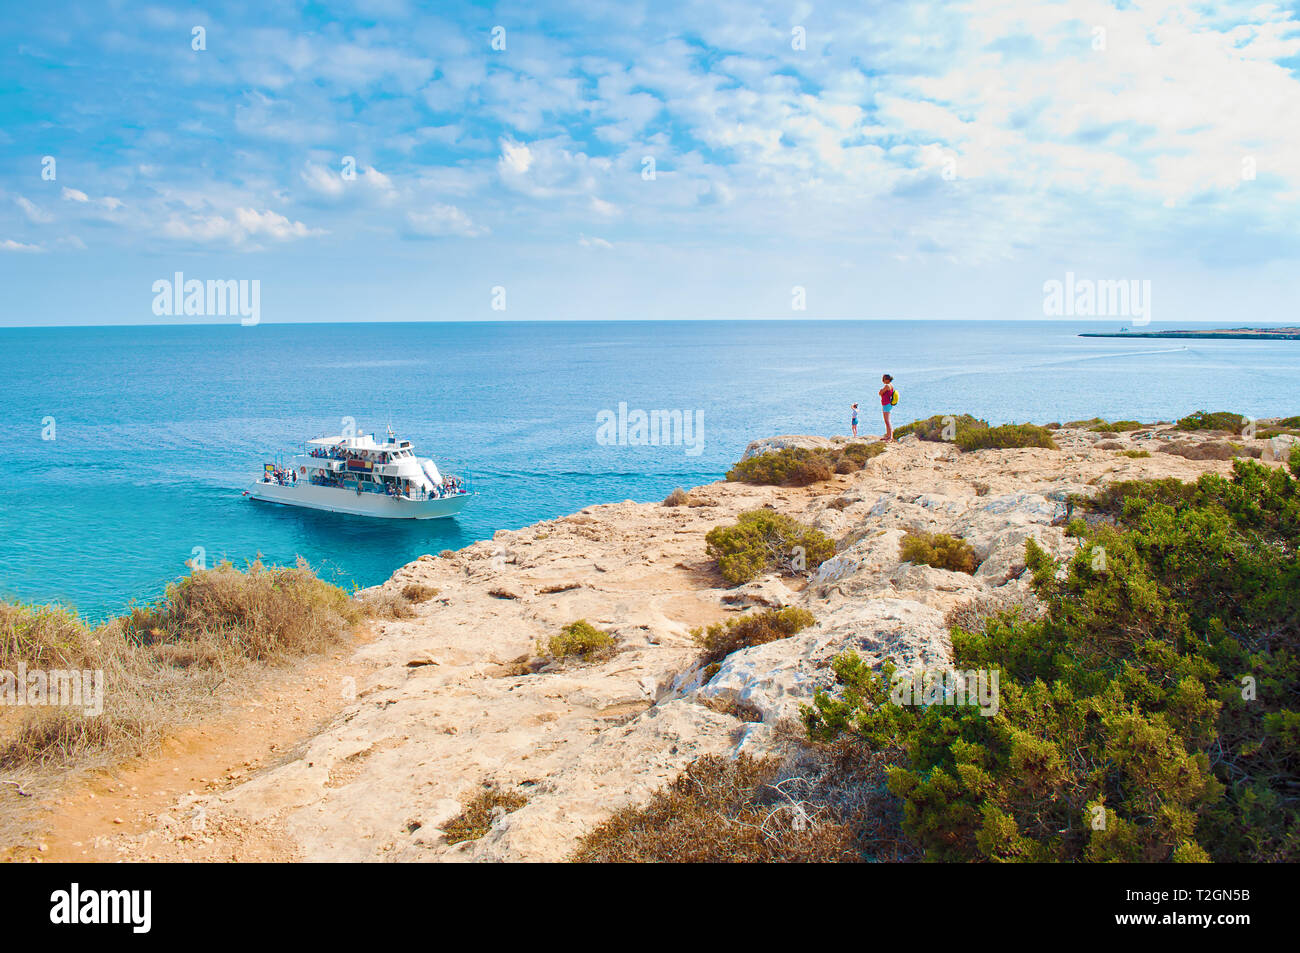 Two tiny figures of girls standing on the edge of a cliff. One white tourist ship in a bay near Cape Greco, Cyprus. Rock coastline near deep green tra Stock Photo